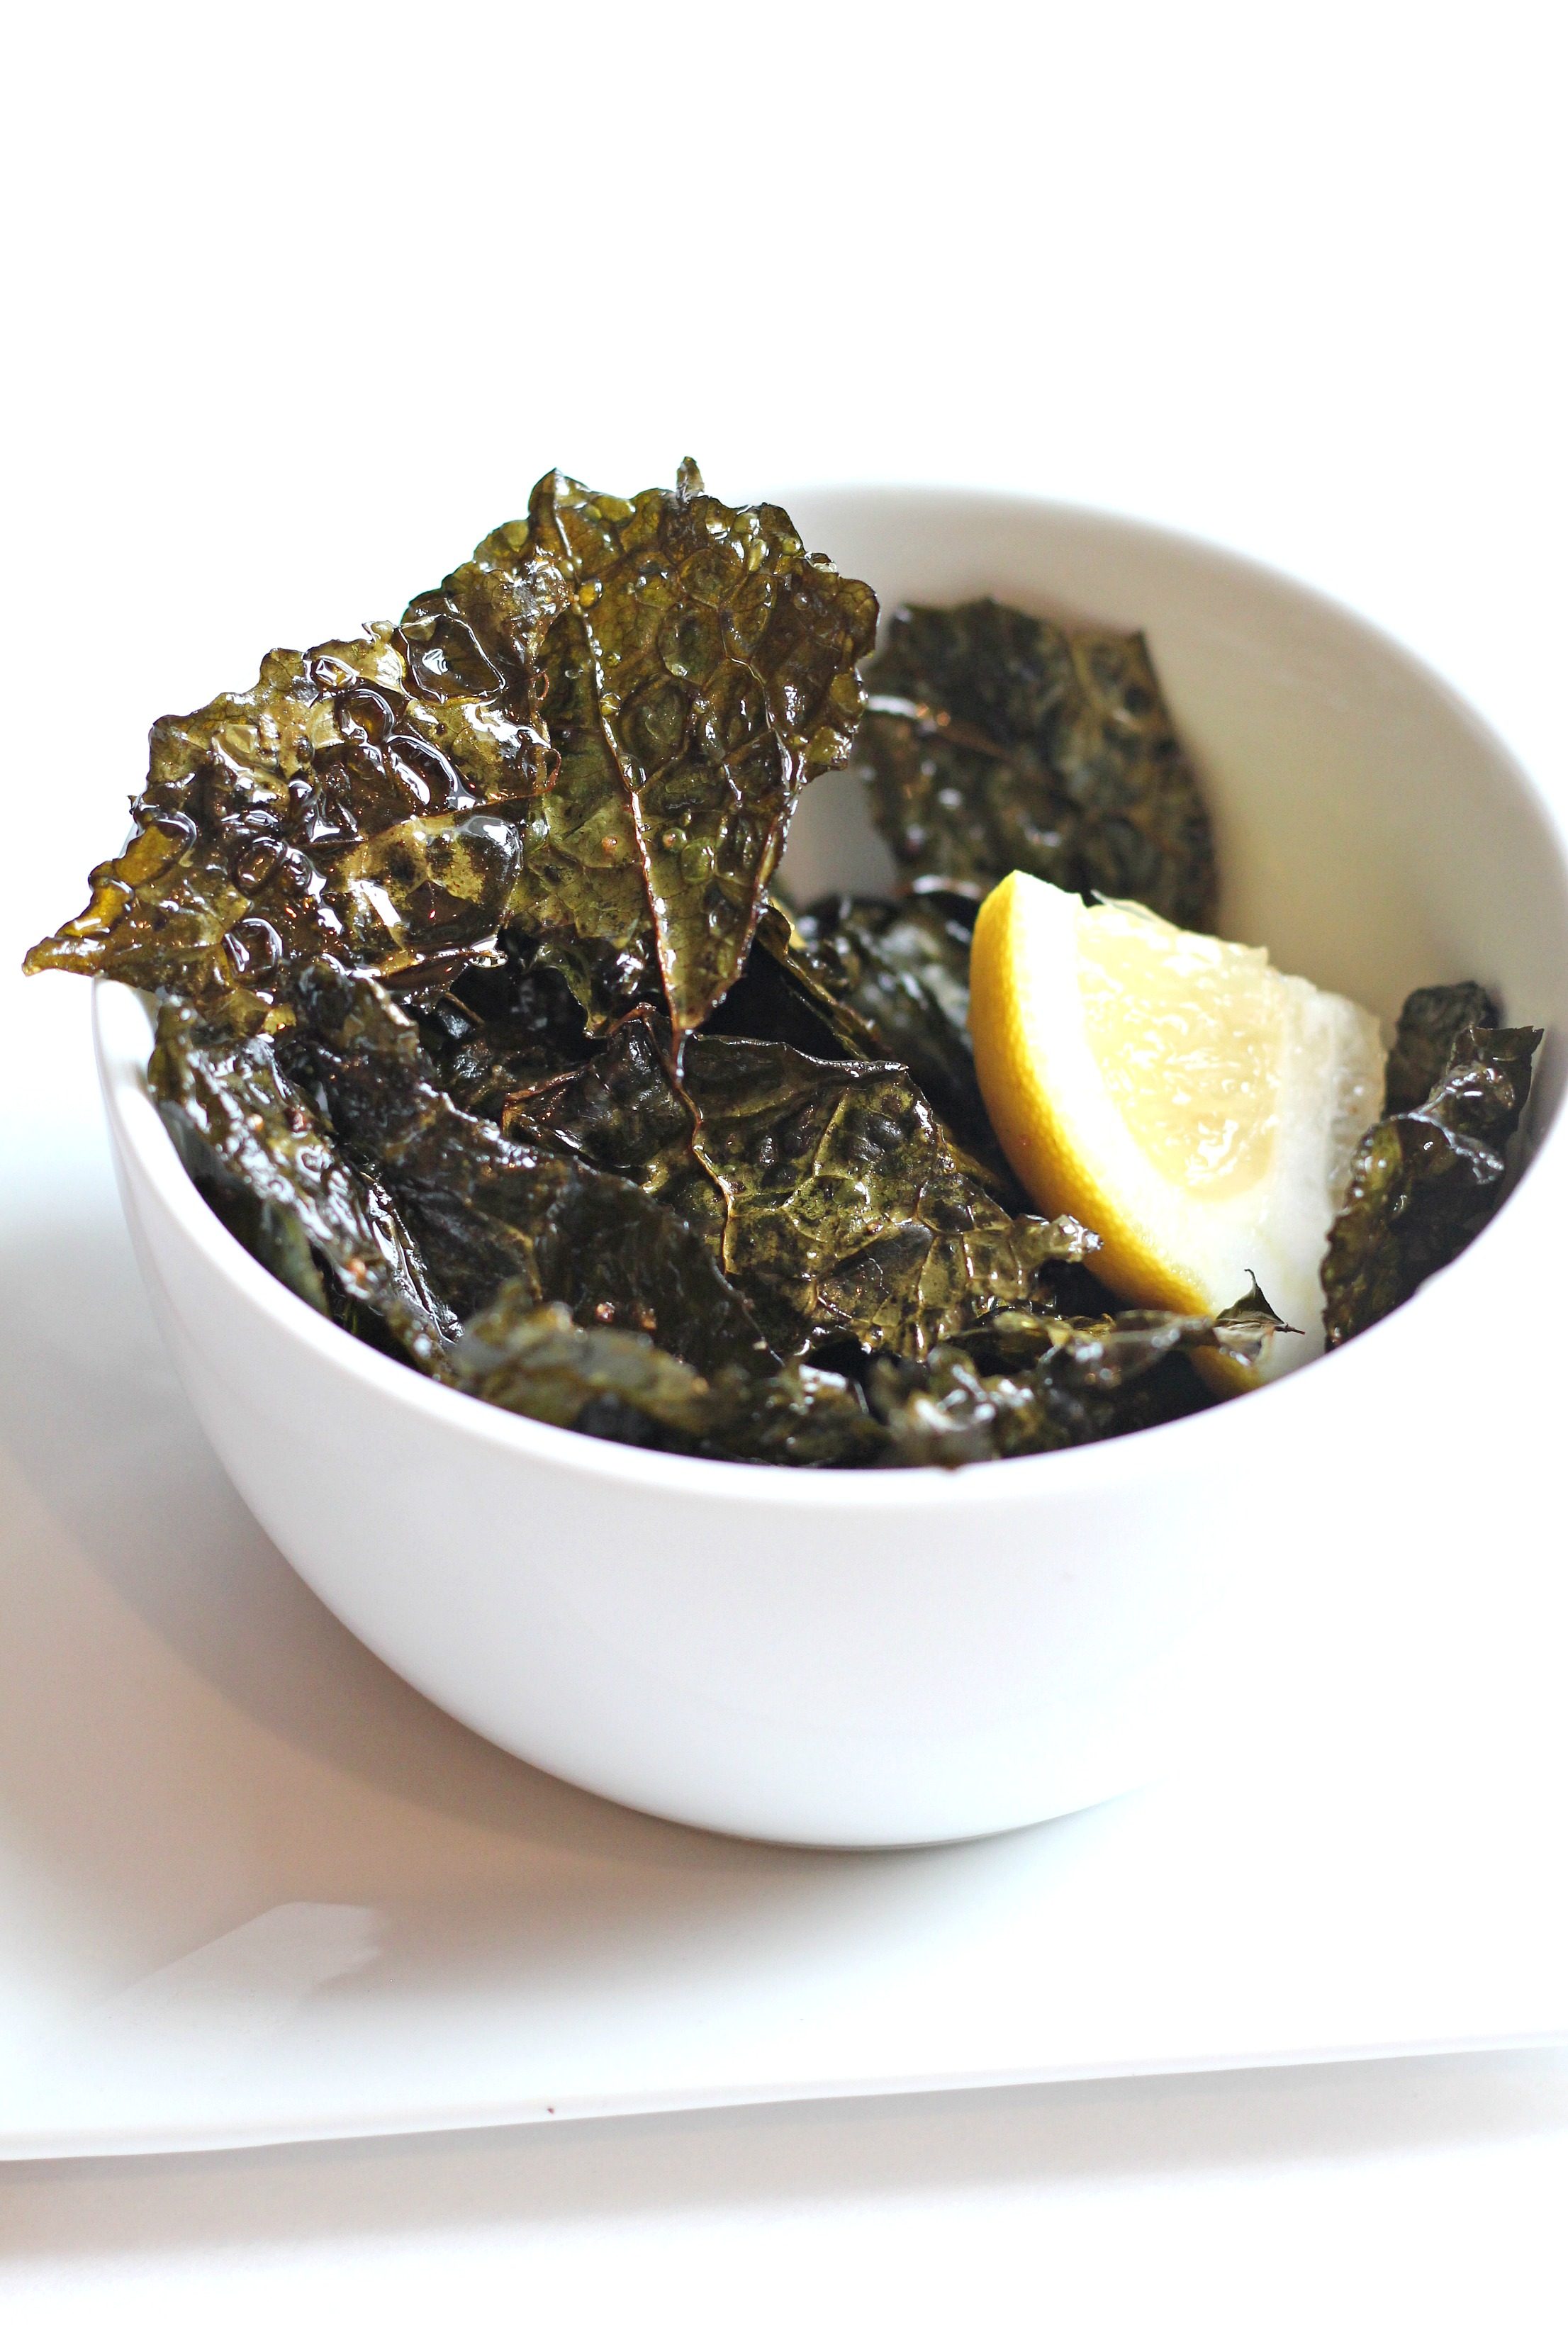 These Salt and Vinegar Kale Chips are the perfect afternoon snack! They have flavors like your favorite potato chips but the benefits of a superfood.